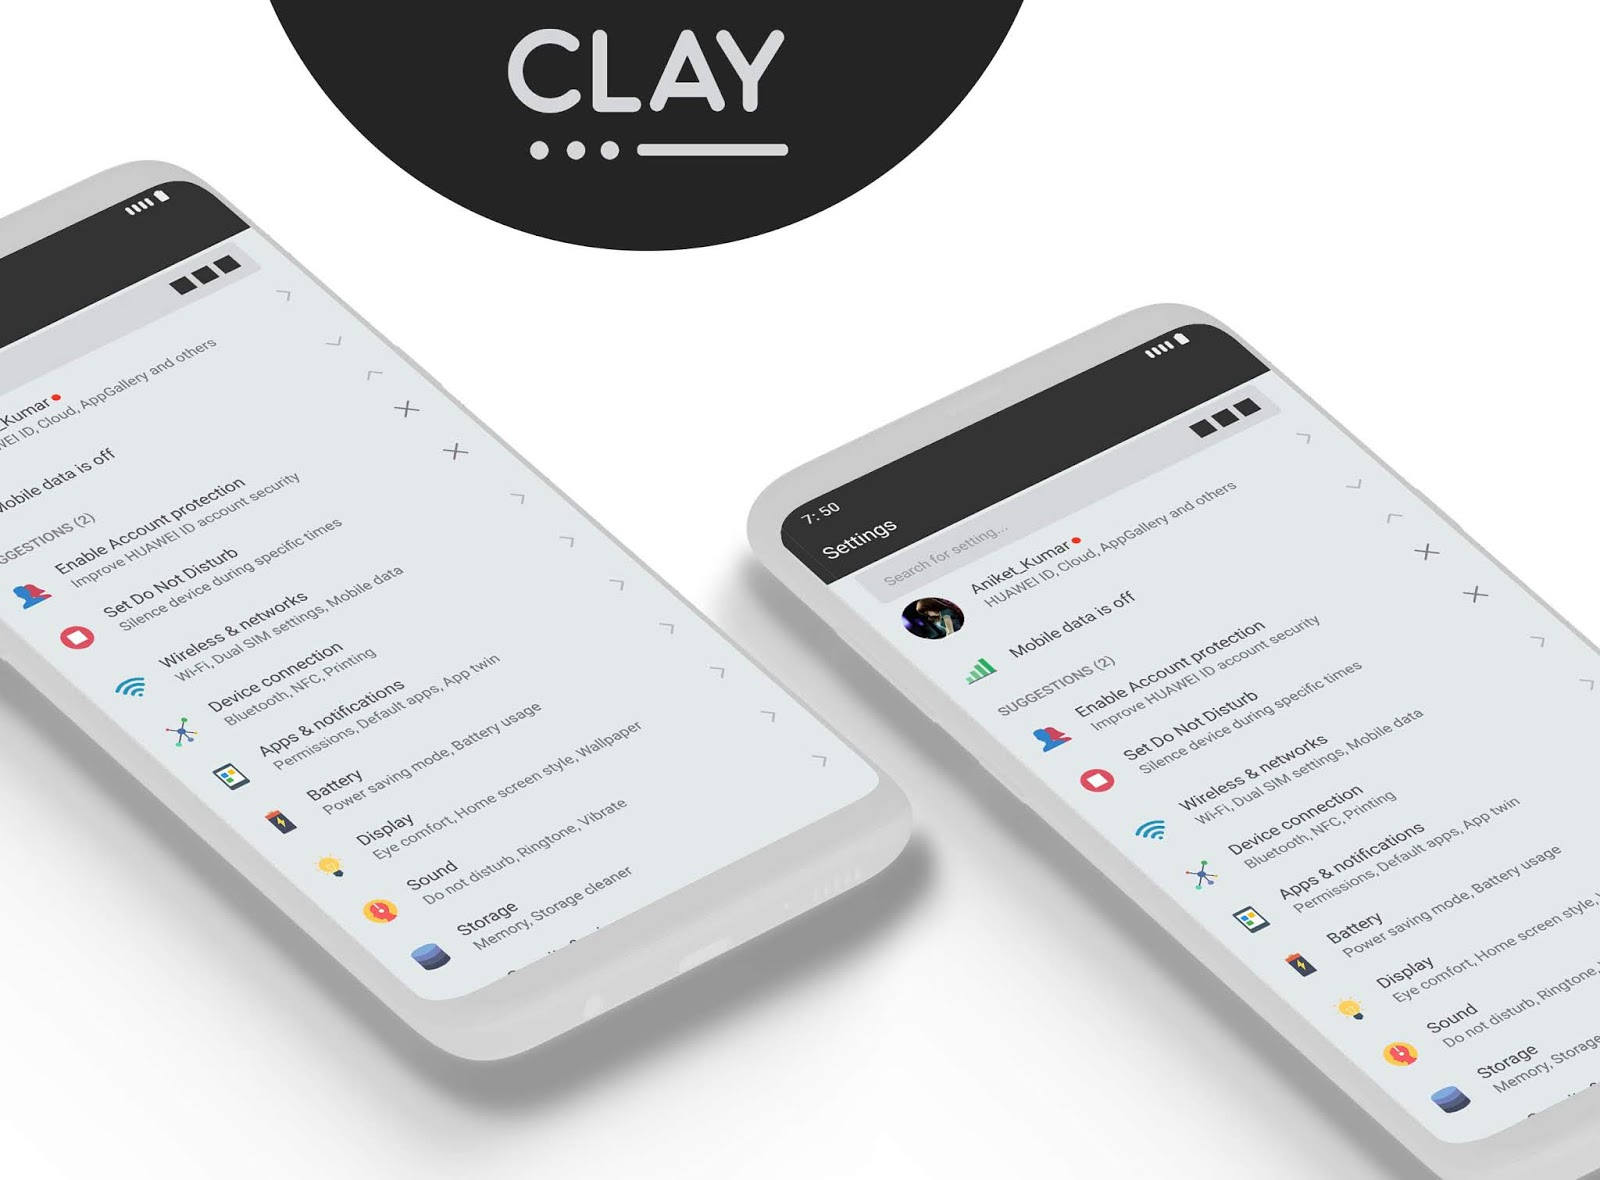 Clay Theme for EMUI 8 - EMUI 5